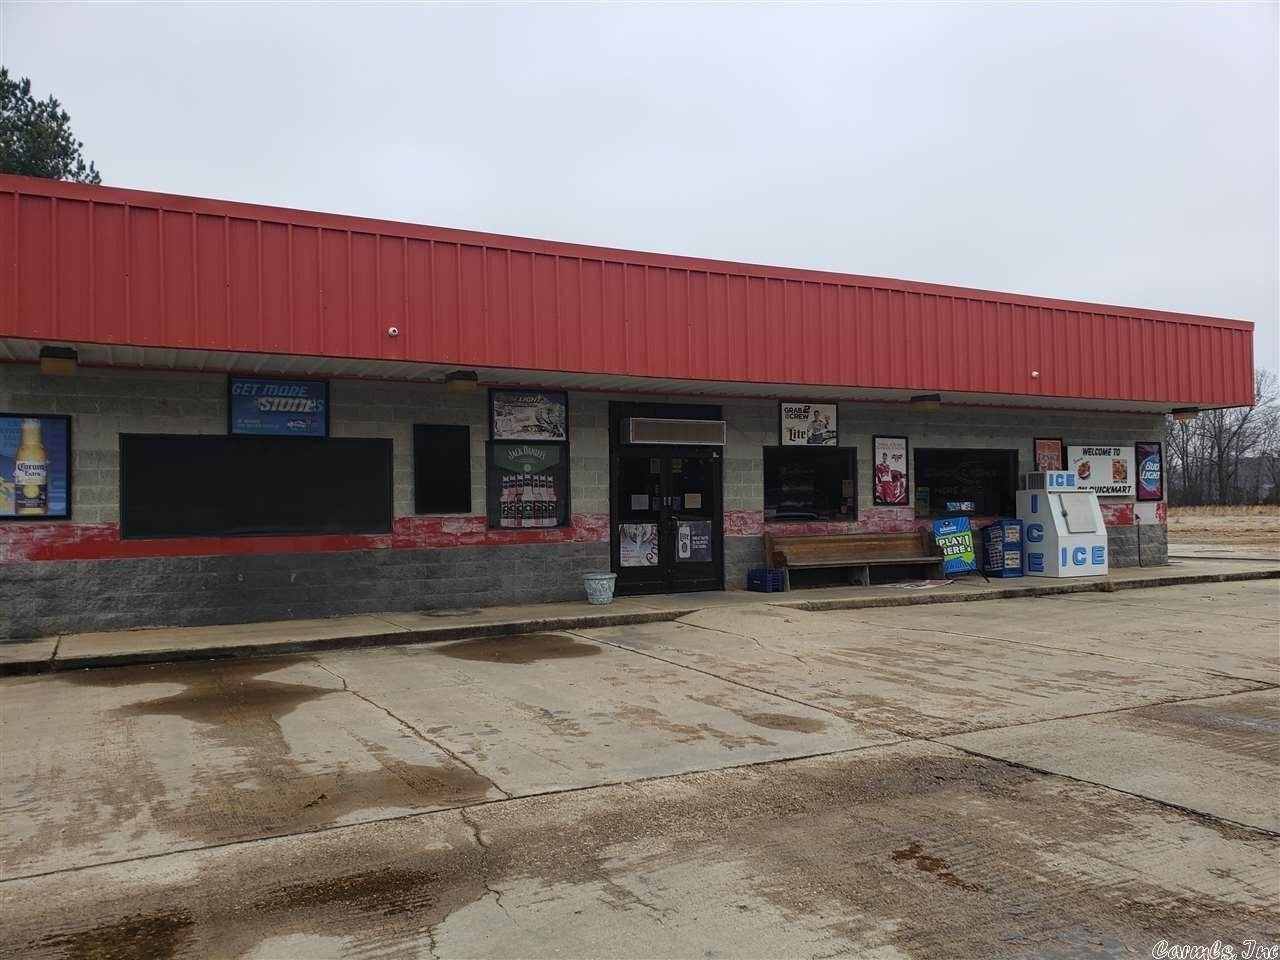 Commercial / Industrial for Sale at 11002 hwy 135 N Lafe, Arkansas 72450 United States